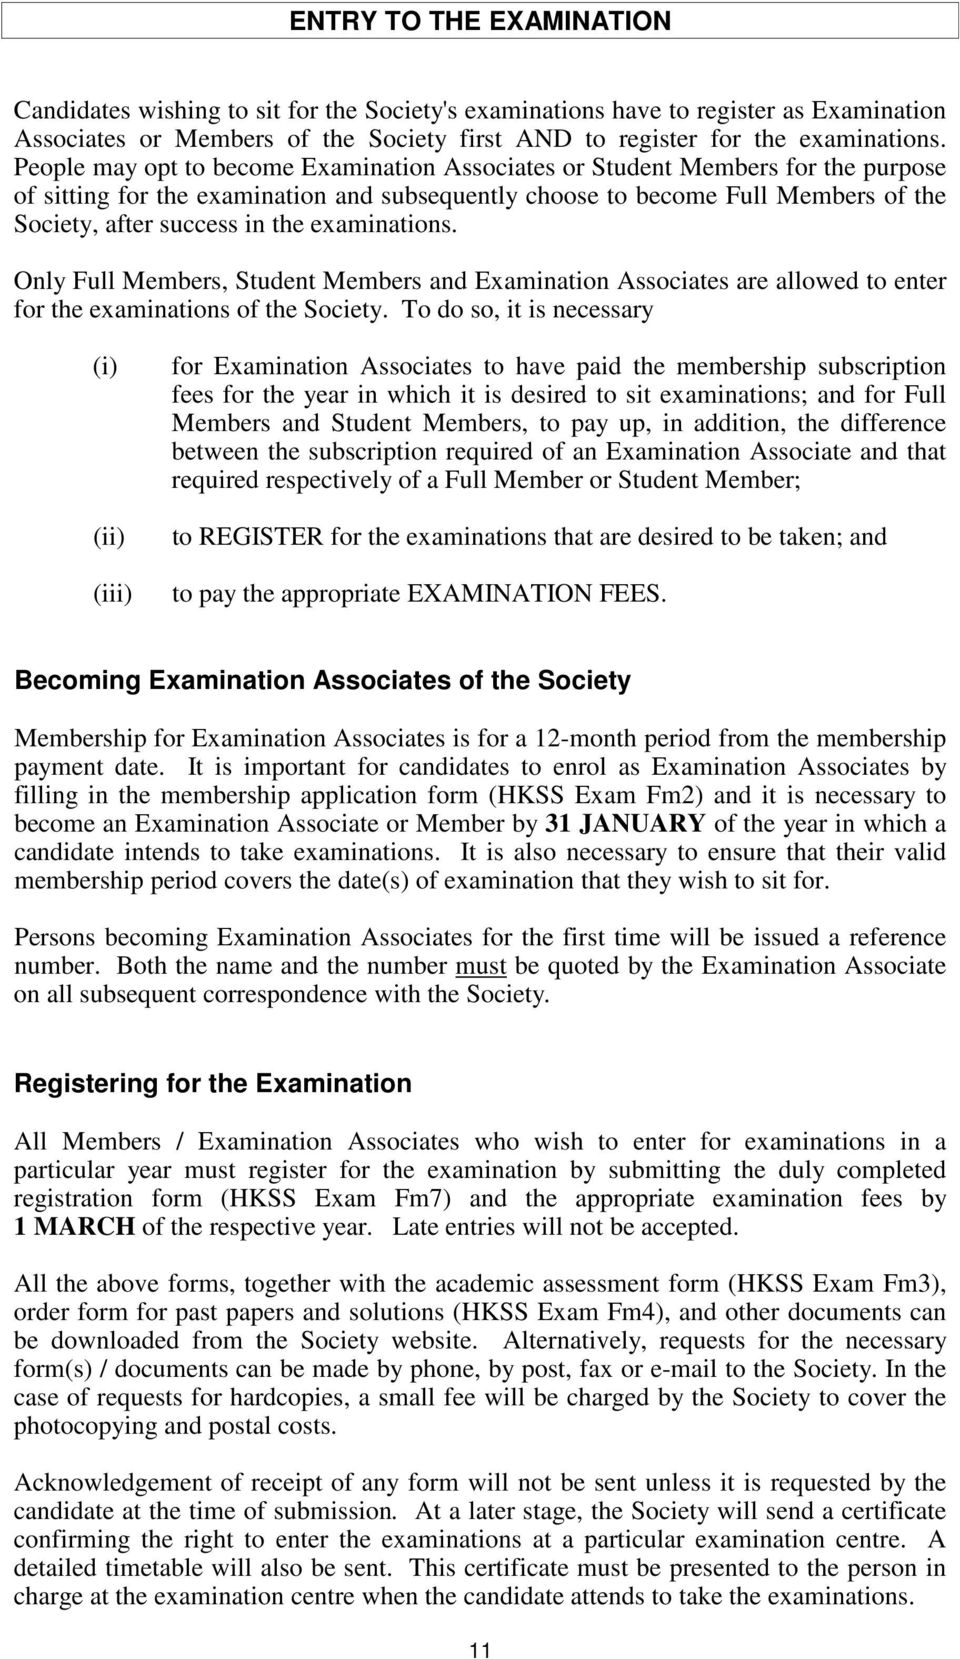 examinations. Only Full Members, Student Members and Examination Associates are allowed to enter for the examinations of the Society.